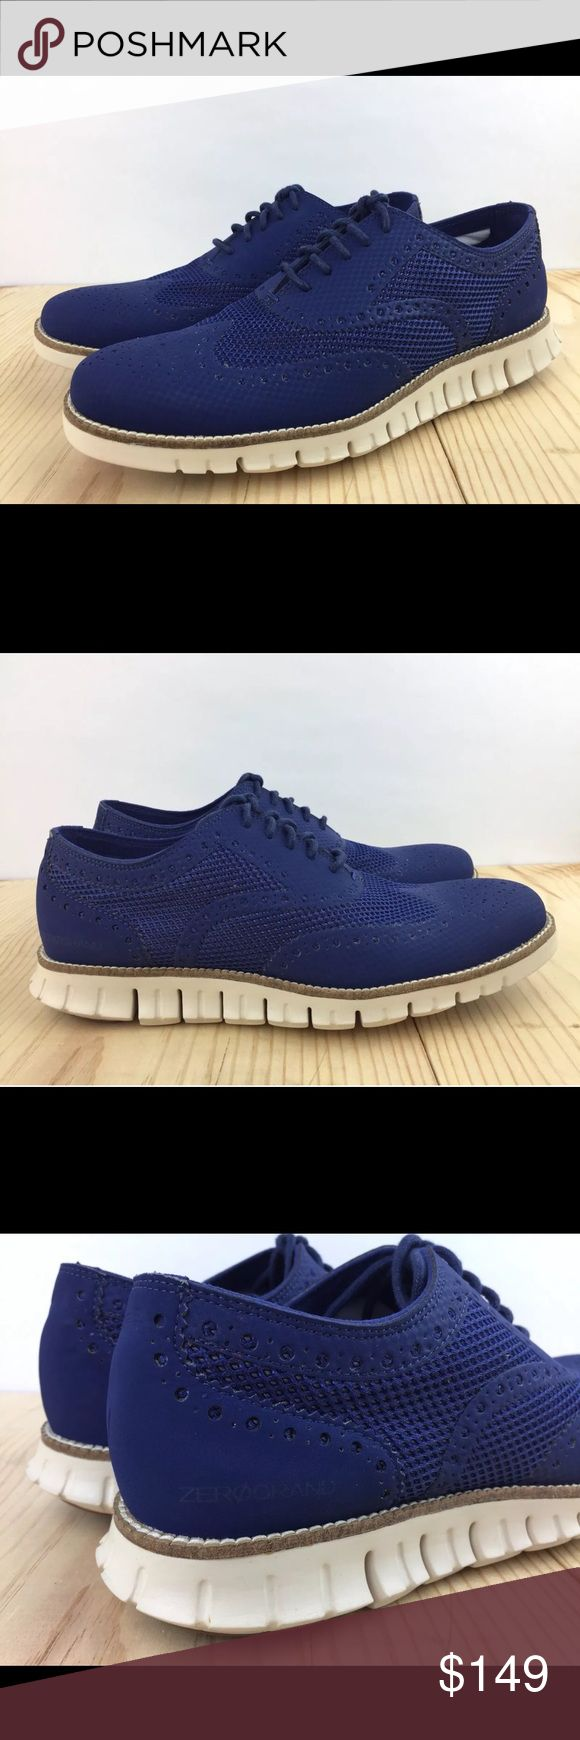 Cole Haan Zero Grand Oxford No Stitch Shoes C25714 COLOR: RAINSTORM BRAND NEW WITH BOX  Wingtip with synthetic uppers. EVA midsole with rubber outsole. Cushioned with Grand.OS technology.  If you have any questions, don't hesitate to message me. Thank you Cole Haan Shoes Oxfords & Derbys